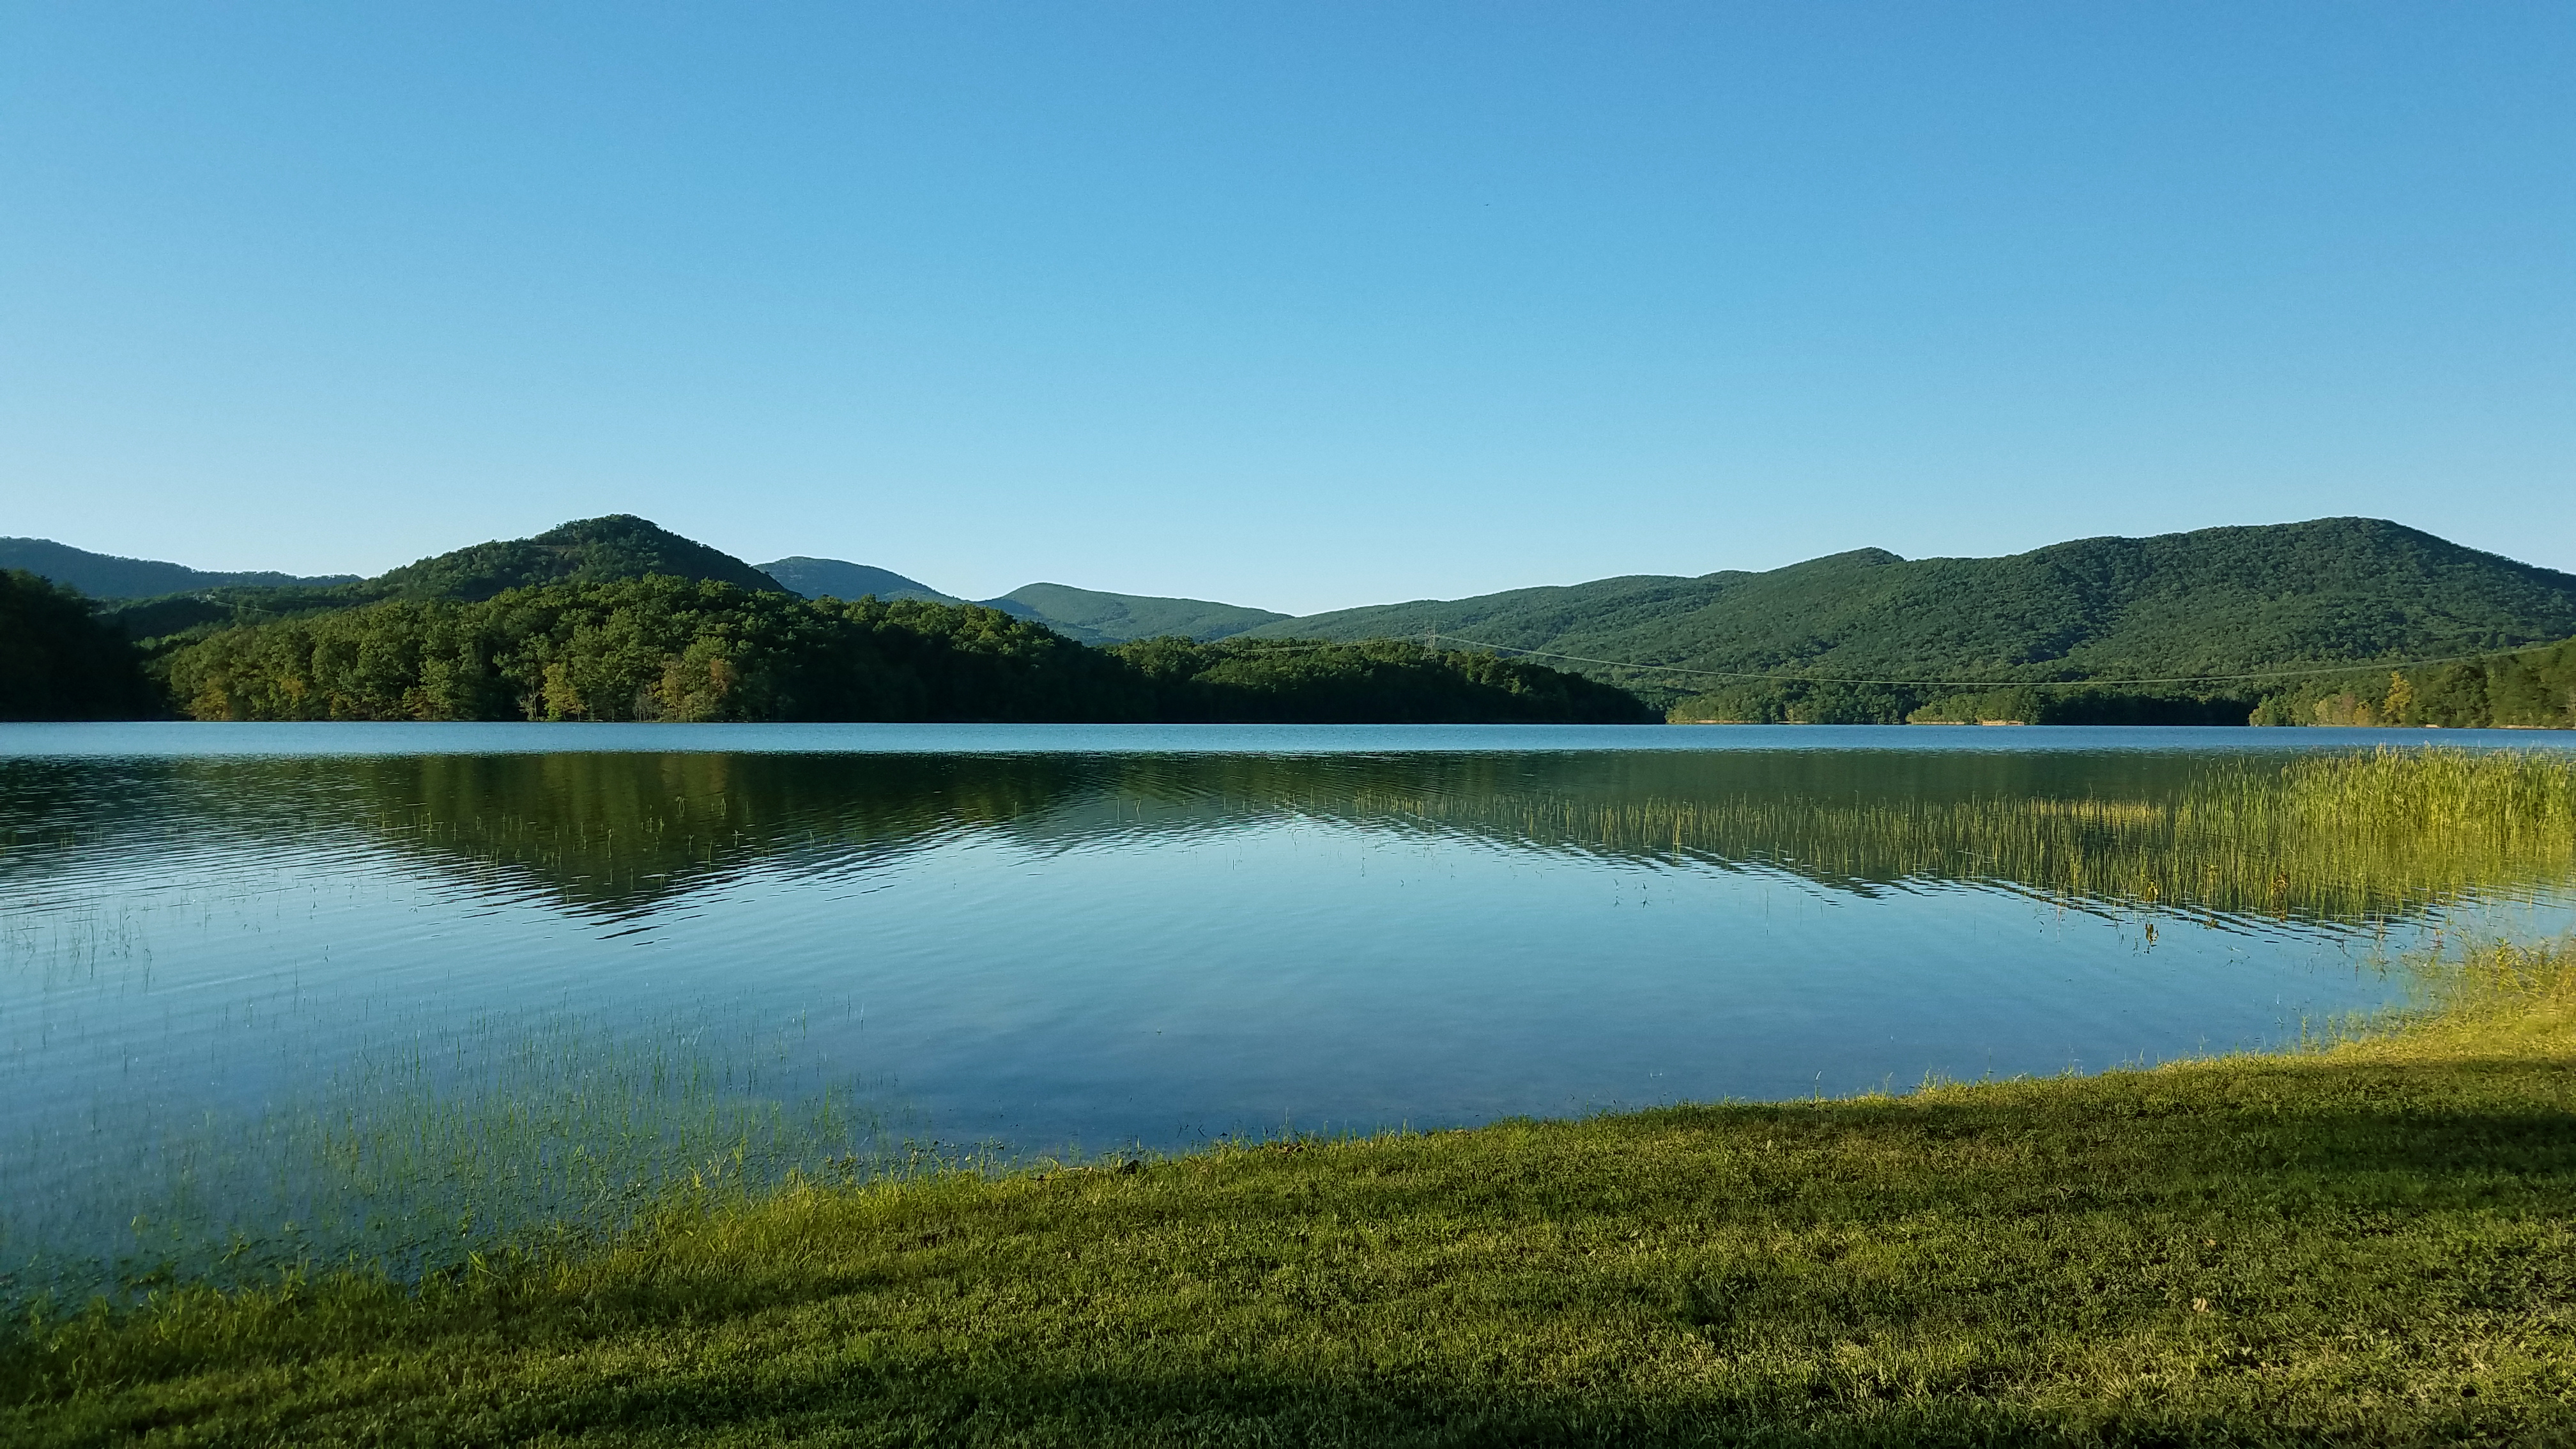 Carvins Cove Reservoir reached full pond in 1946 and impounds 6.5-billion gallons of water.  It is the primary source of drinking water for the Roanoke Valley.